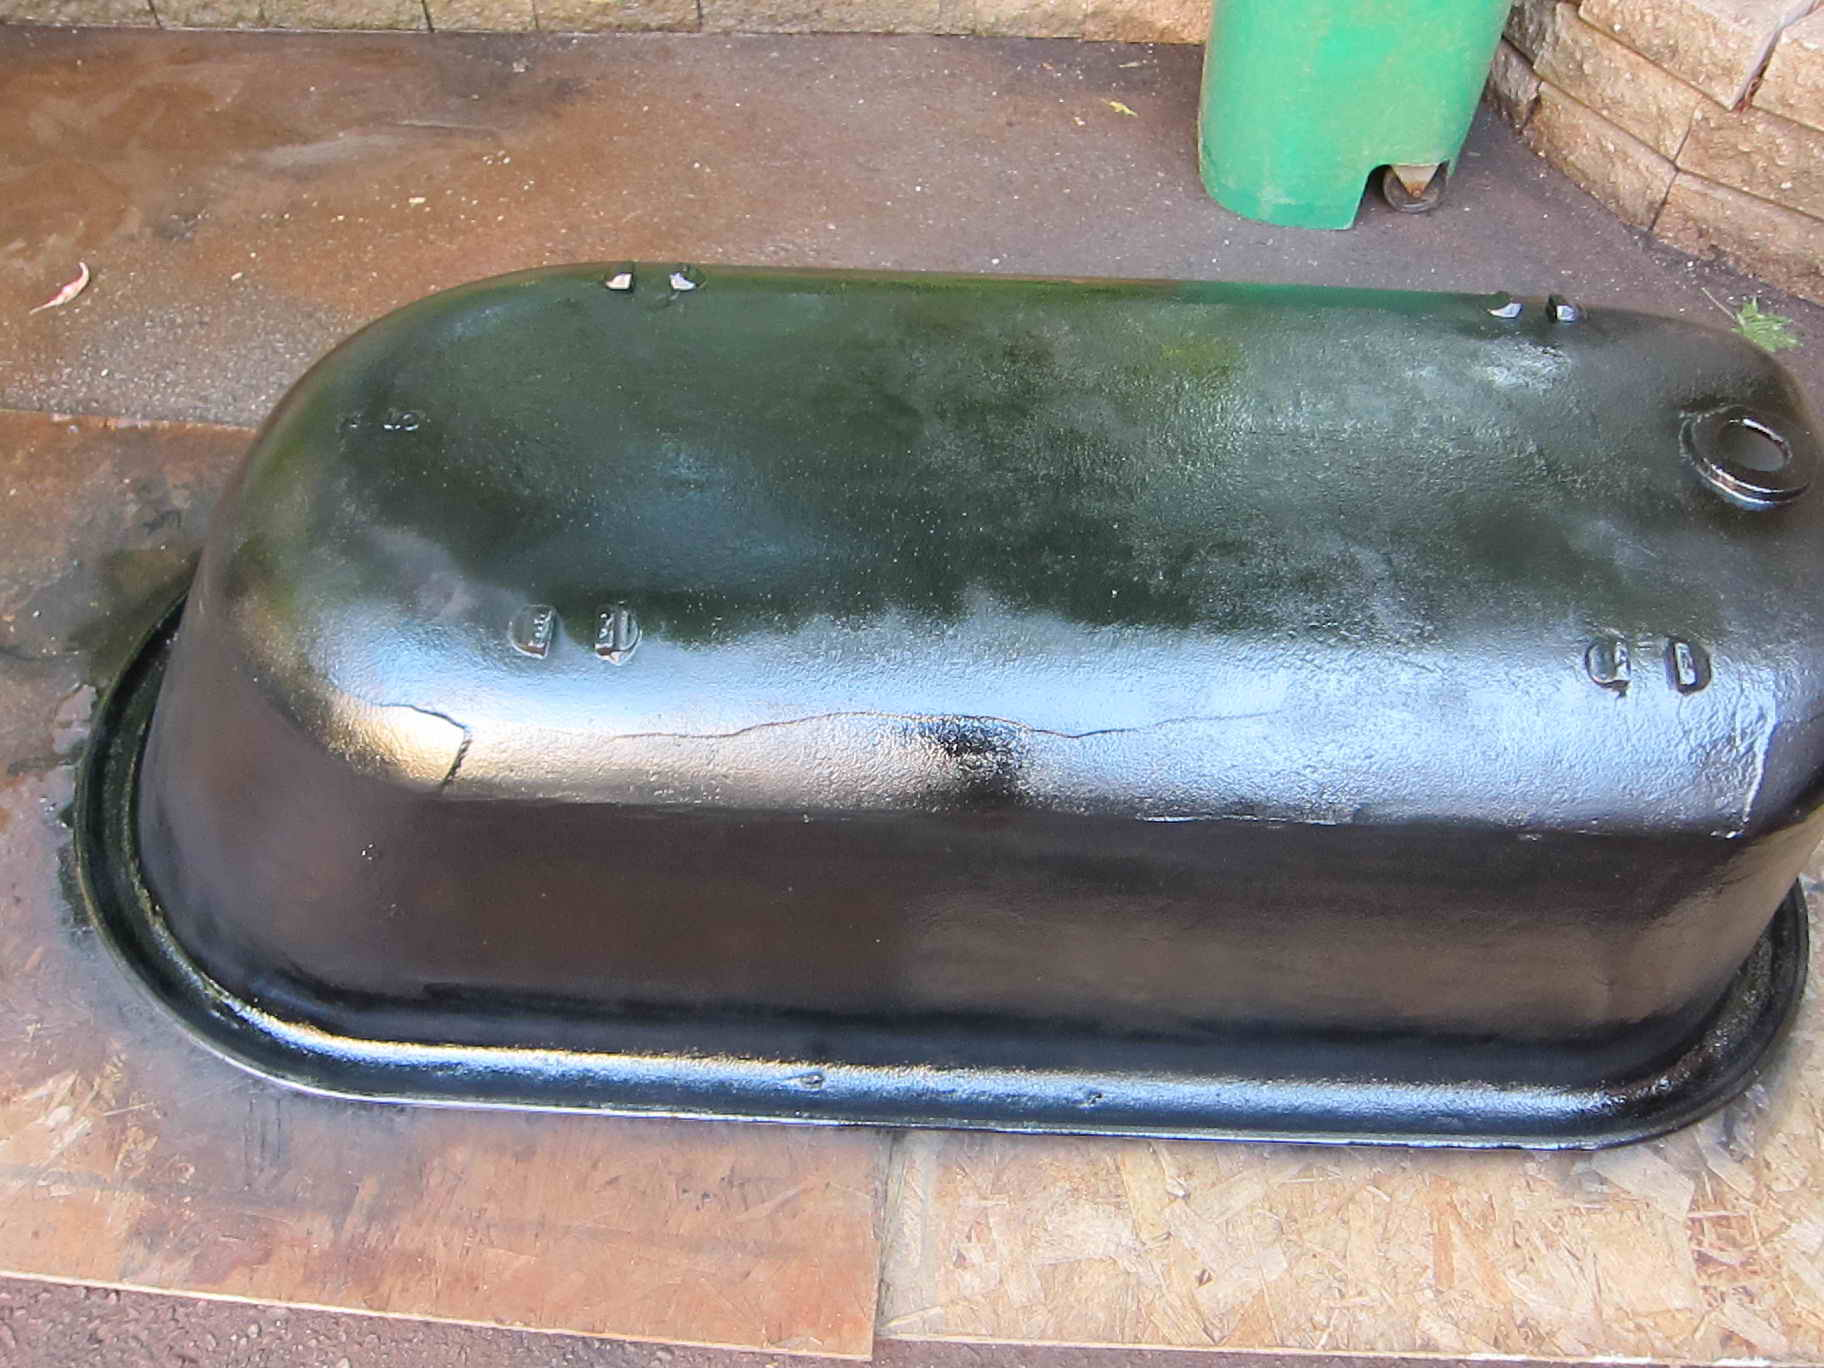 Cool Bathtub Refinishing Company Big Bathroom Refinishers Rectangular Bathtub Repair Refinishing Young Surface Refinishing BrightTub Reglazing Cost How To Make An Upcycled Vintage Cast Iron Claw Foot Bathtub Sofa